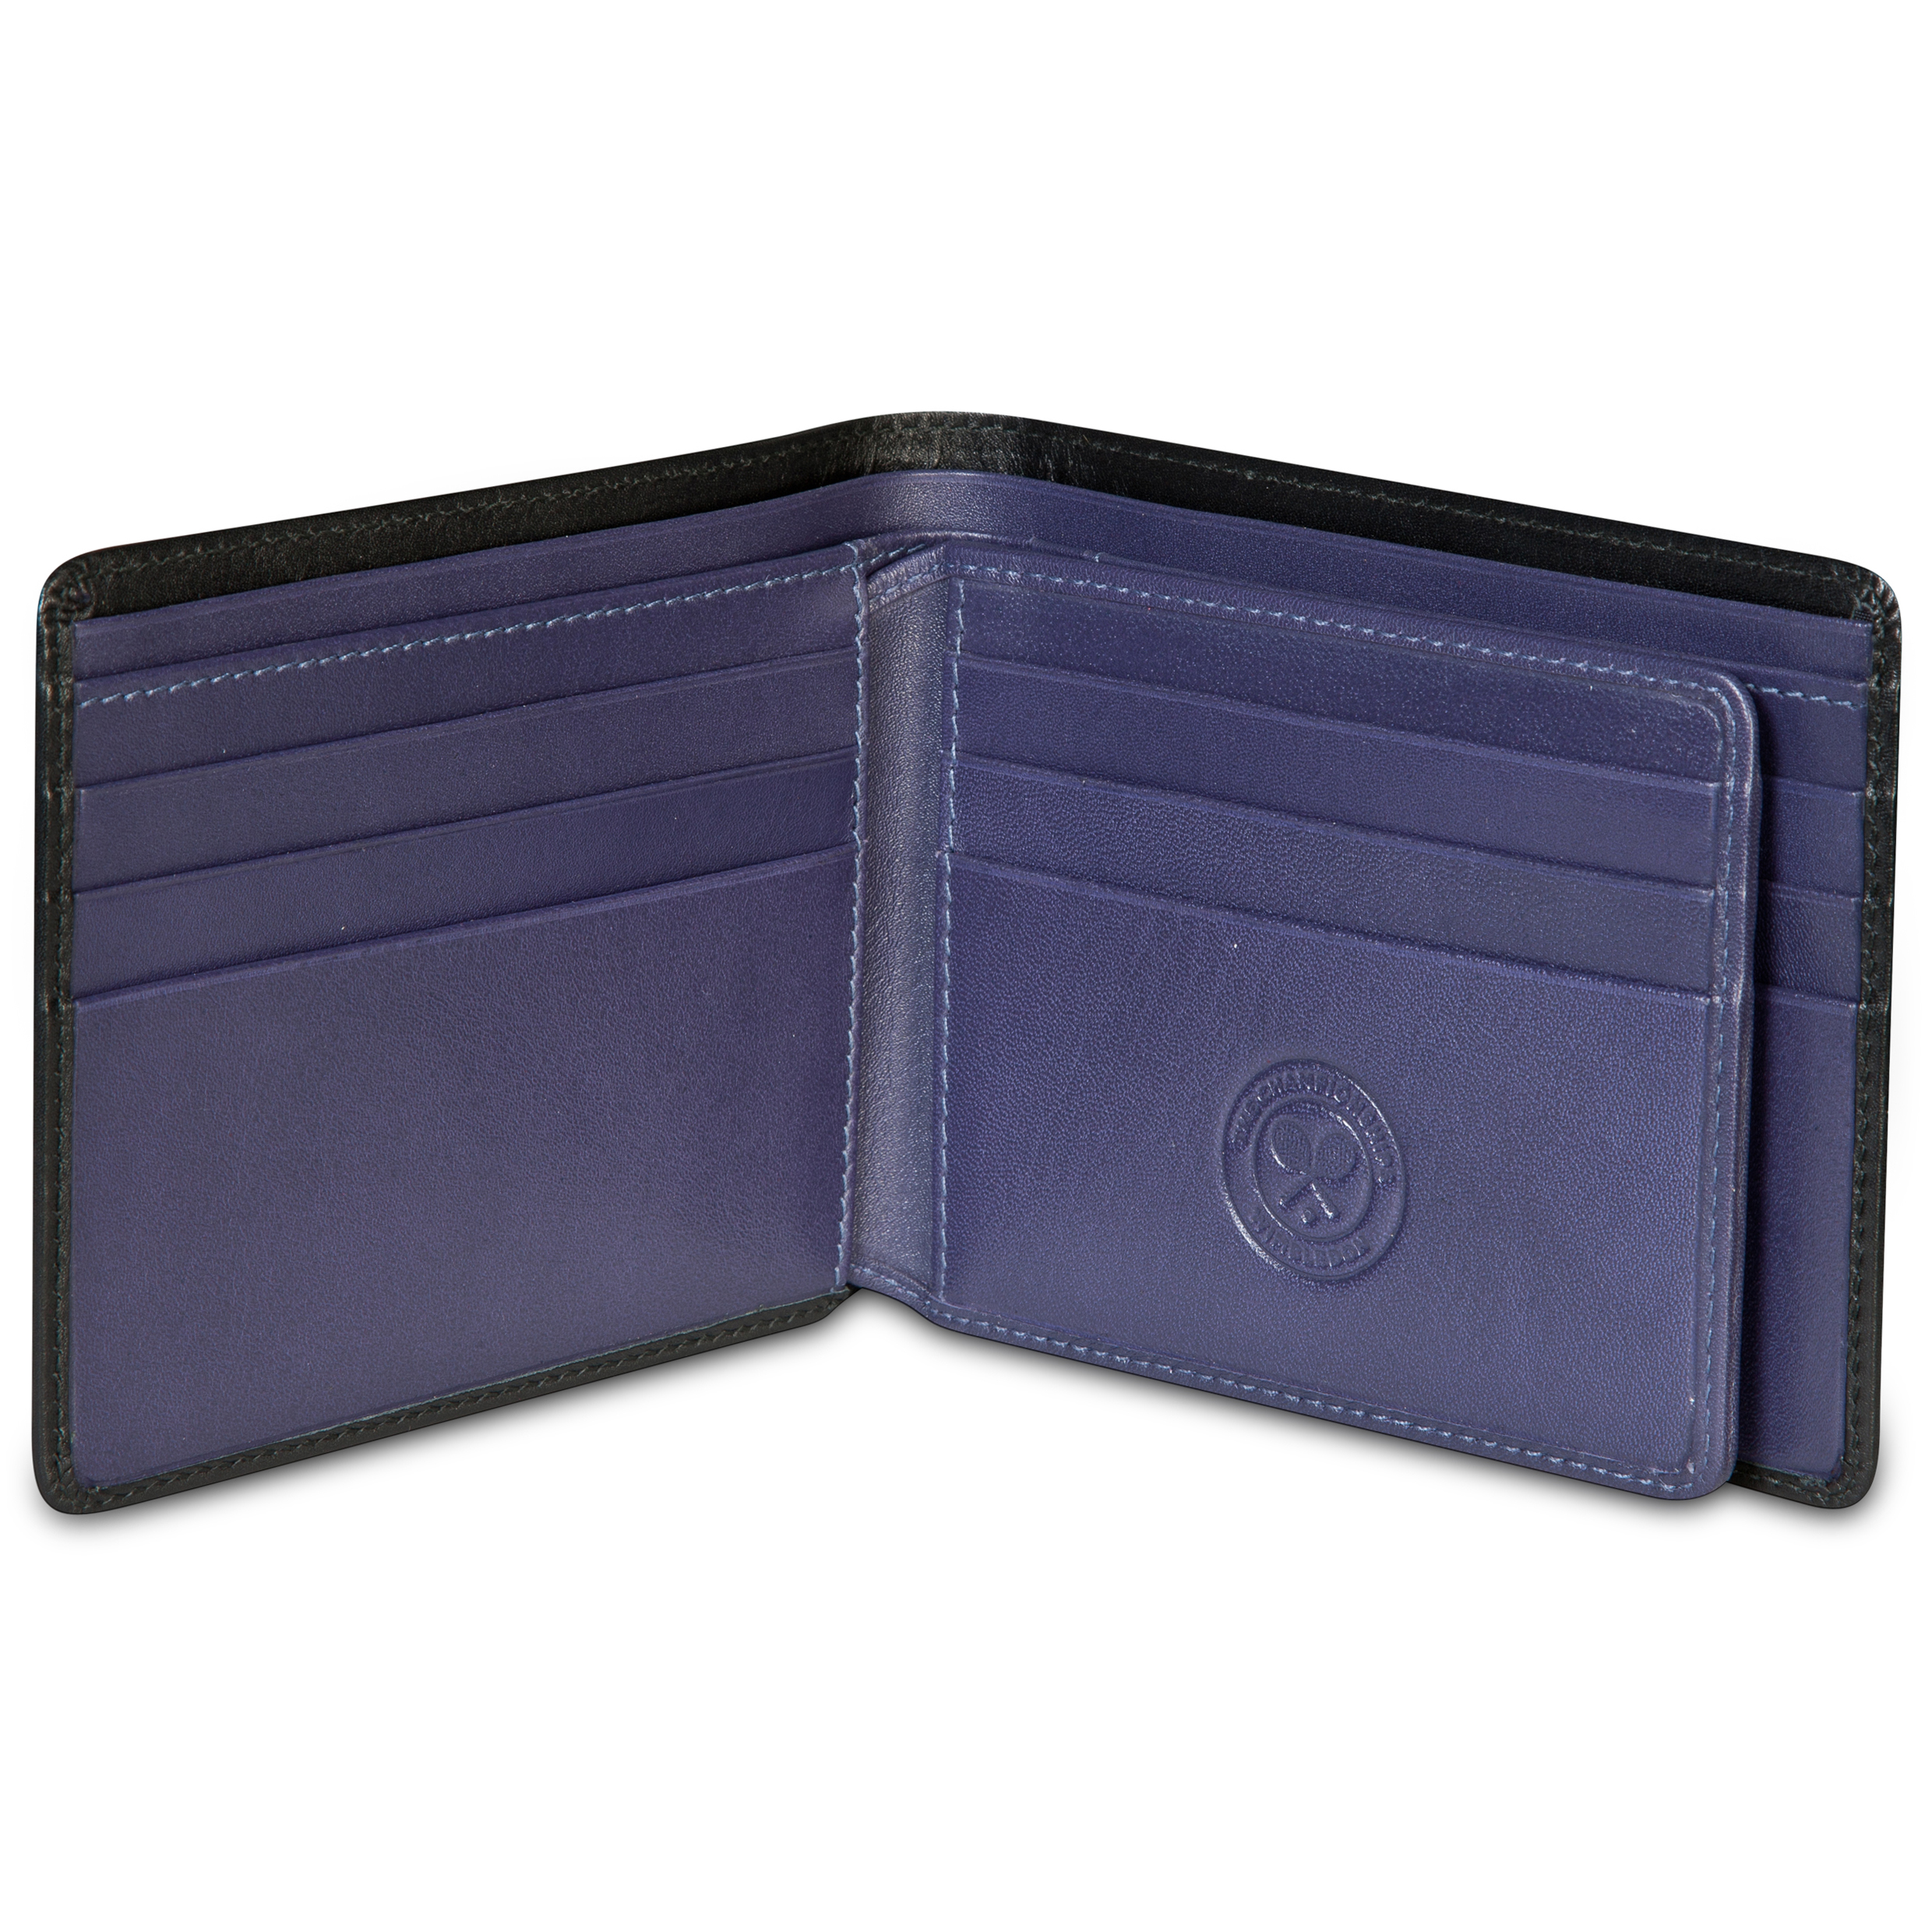 Wimbledon Leather Wallet - Black